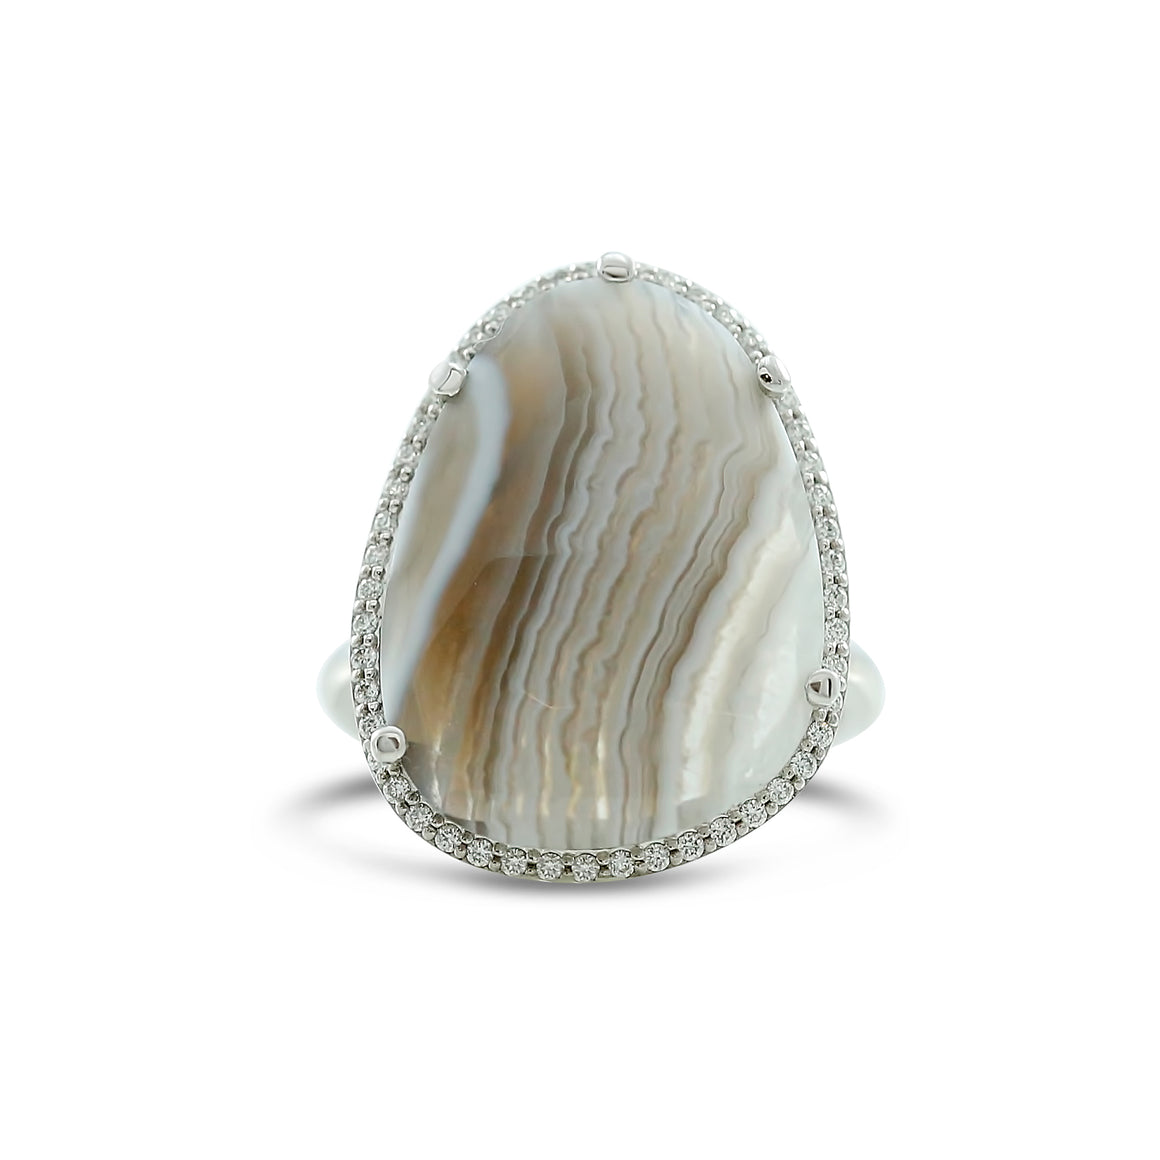 7.60ct agate slice ring with a white diamond halo and a thin white gold band prong set with criss cross details in the under gallery